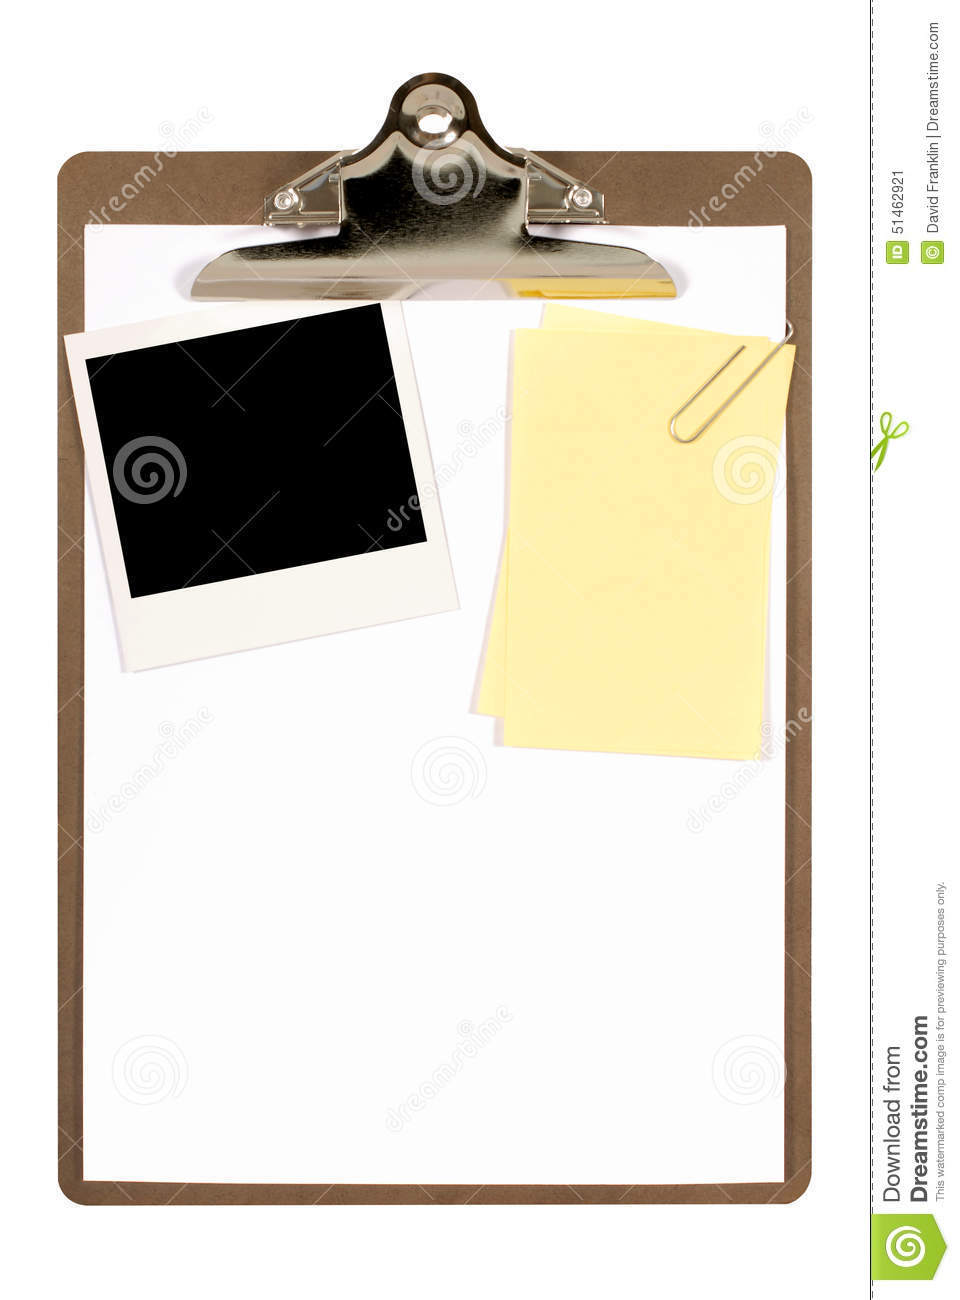 Clipboard With Polaroid Photo Frame And Yellow Post-it Style Sticky ...